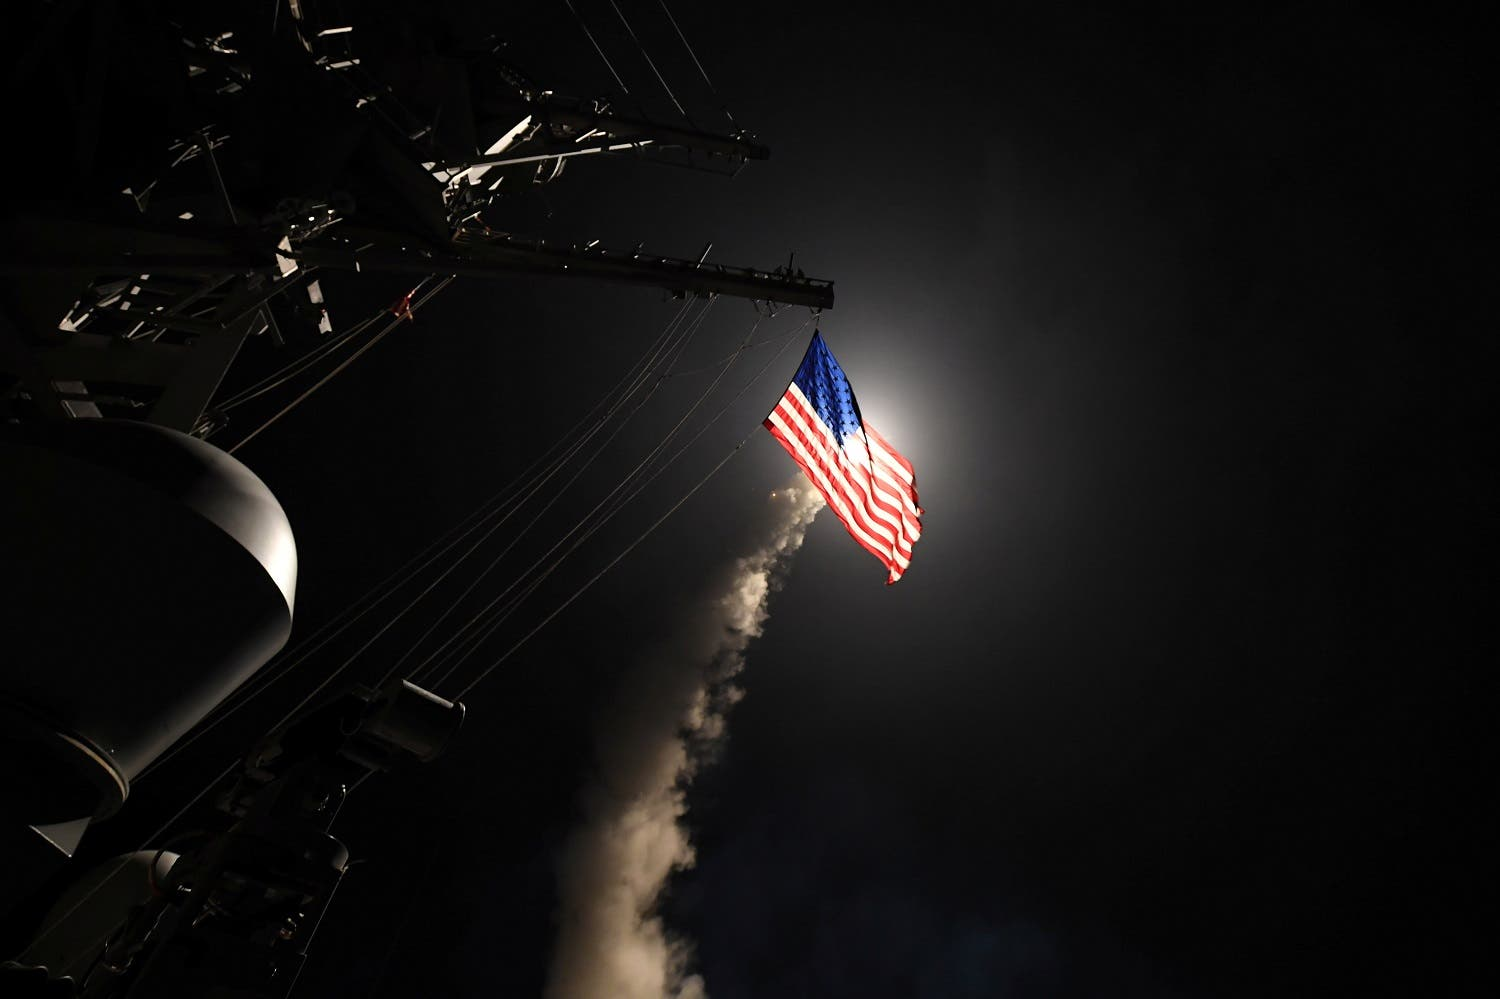 US Navy guided-missile destroyer USS Porter (DDG 78) conducts strike operations as part of a cruise missile strike against Syria on April 7, 2017 after a Syrian town was targeted in a sarin gas attack (Photo: Ford Williams/Courtesy US Navy/Handout via Reuters)